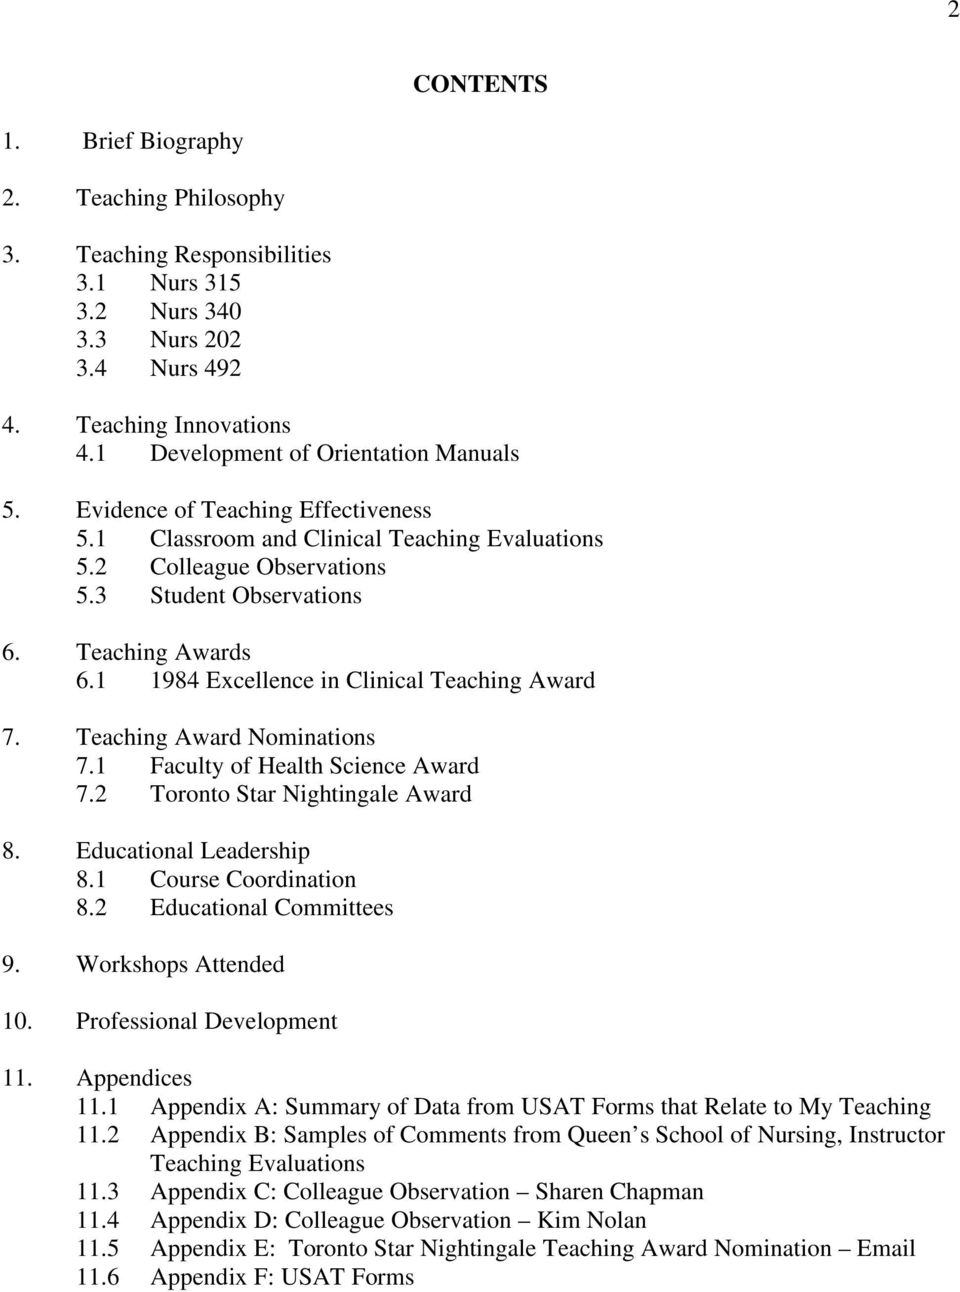 1 1984 Excellence in Clinical Teaching Award 7. Teaching Award Nominations 7.1 Faculty of Health Science Award 7.2 Toronto Star Nightingale Award 8. Educational Leadership 8.1 Course Coordination 8.